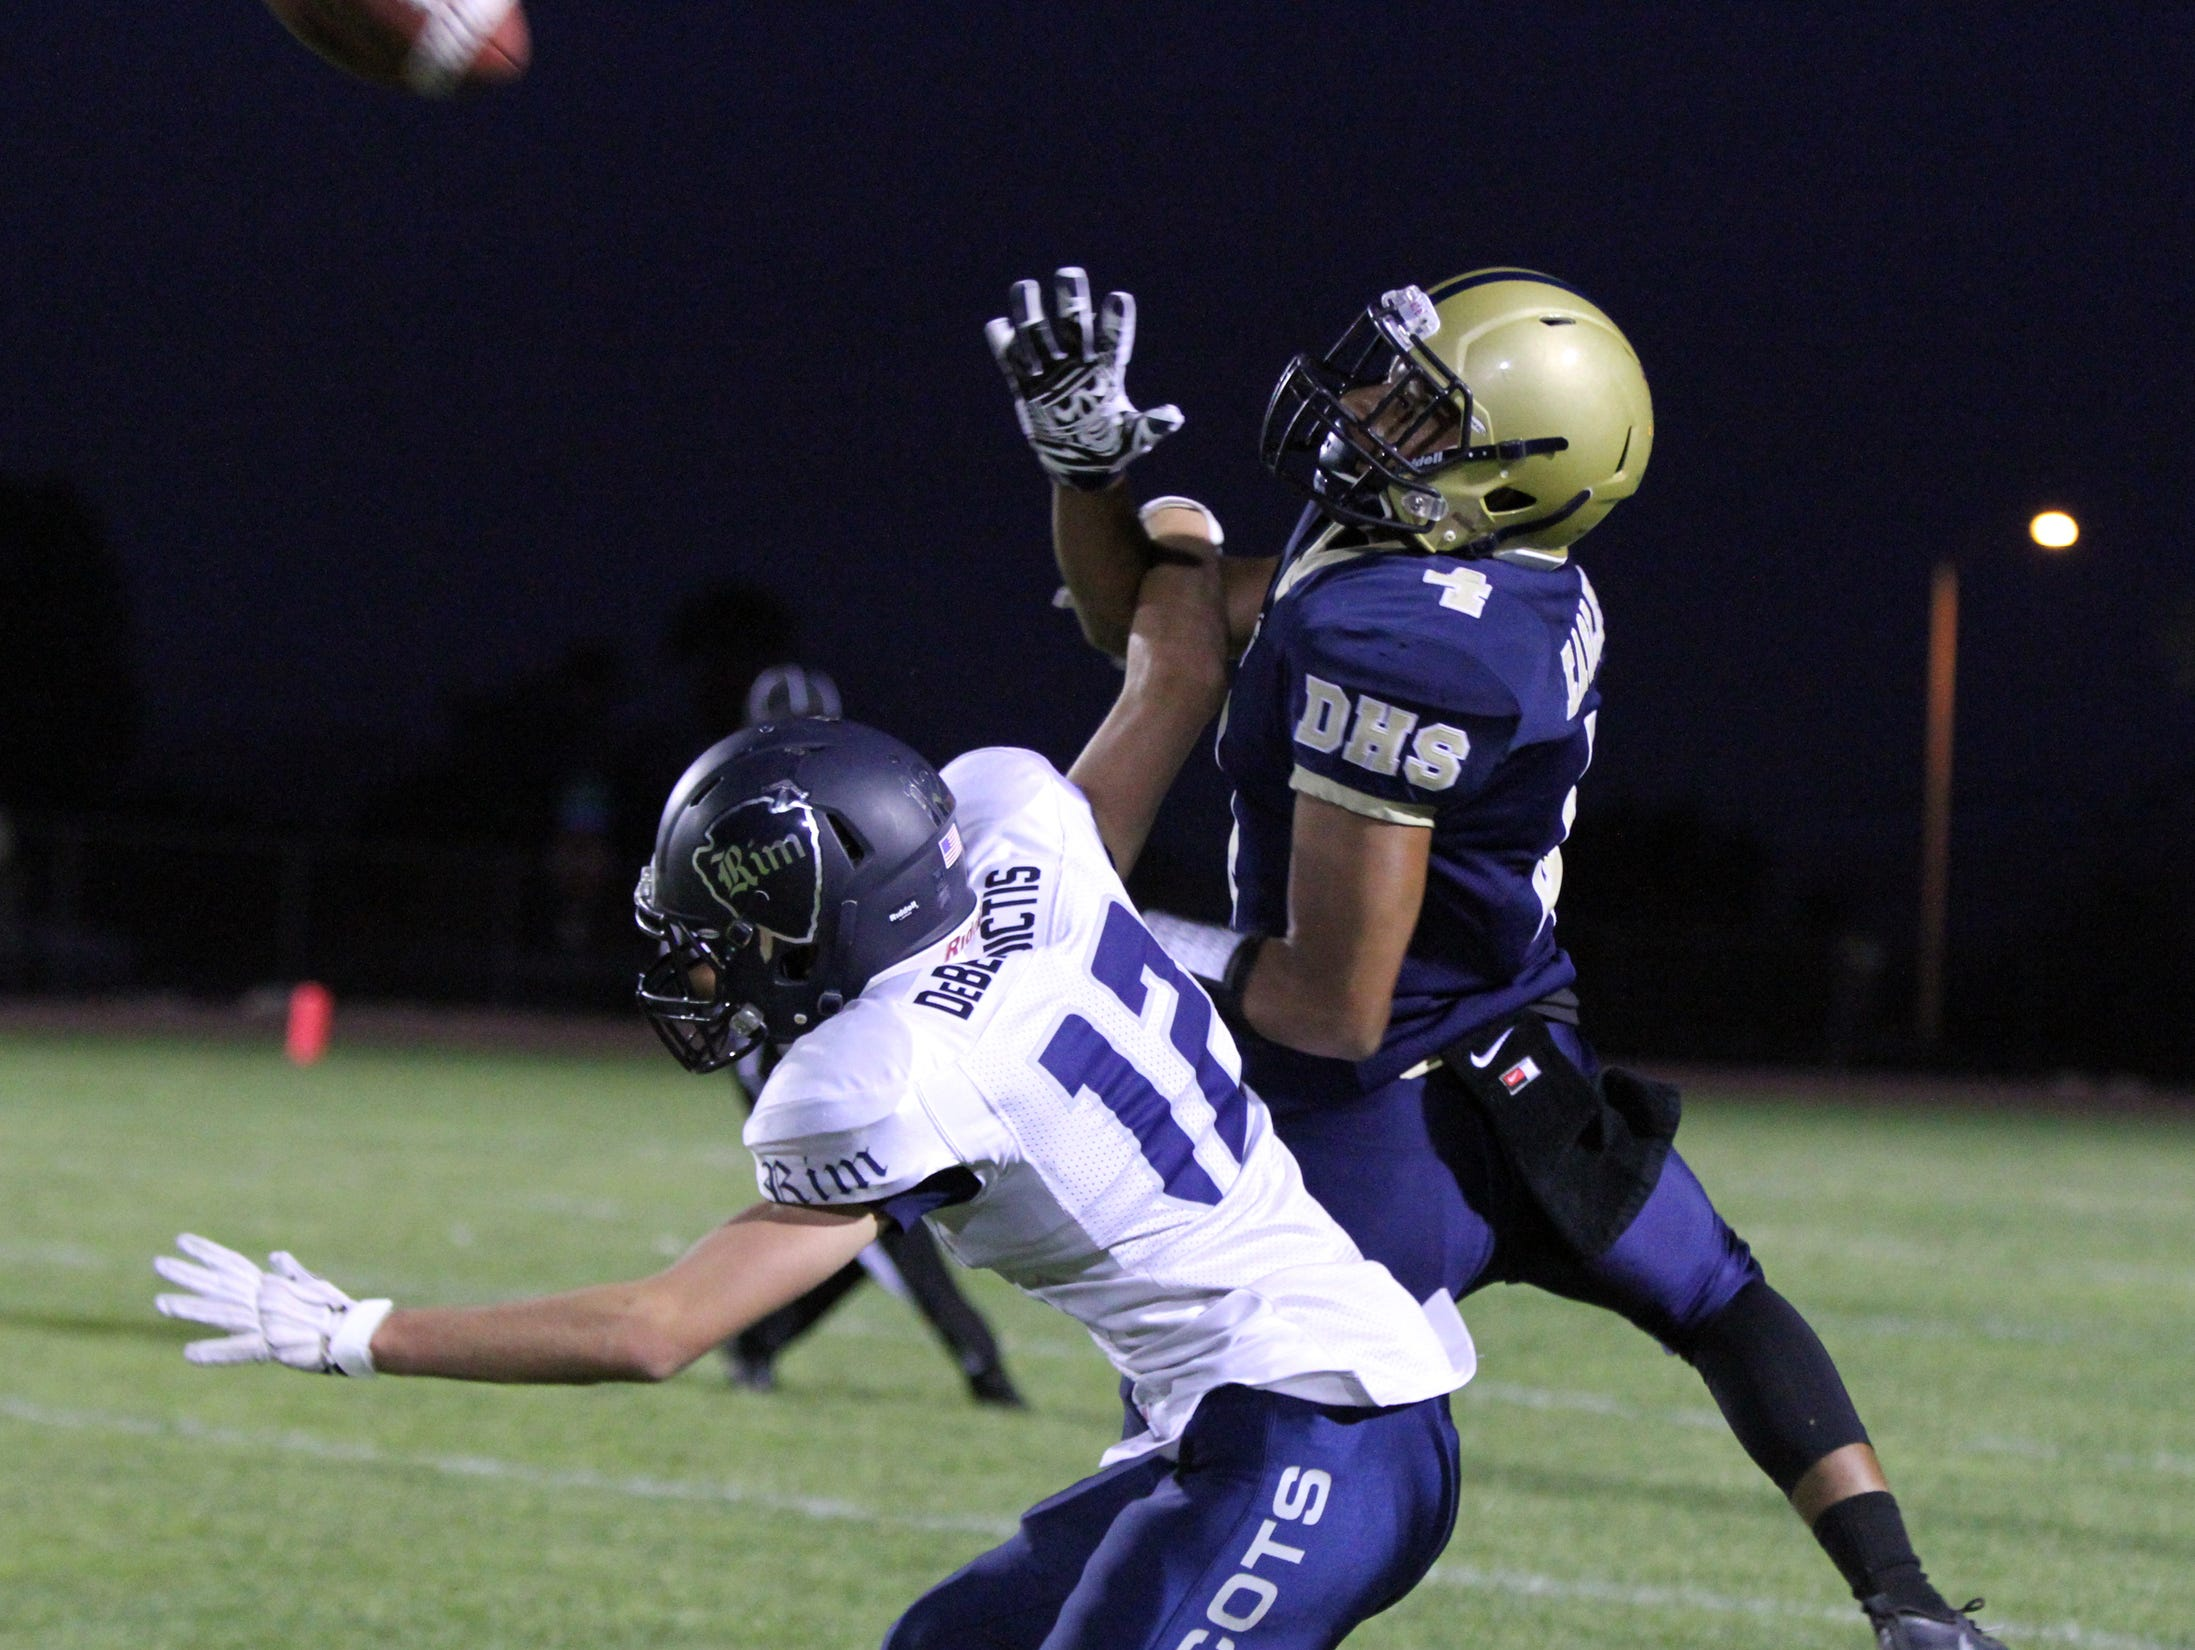 Rim of the World's Taylor Debenedictis, left, interferes on a pass intended for Desert Hot Springs' Alber Montes-Reyes during the first half of the game in Desert Hot Springs on Friday, September 16, 2016.